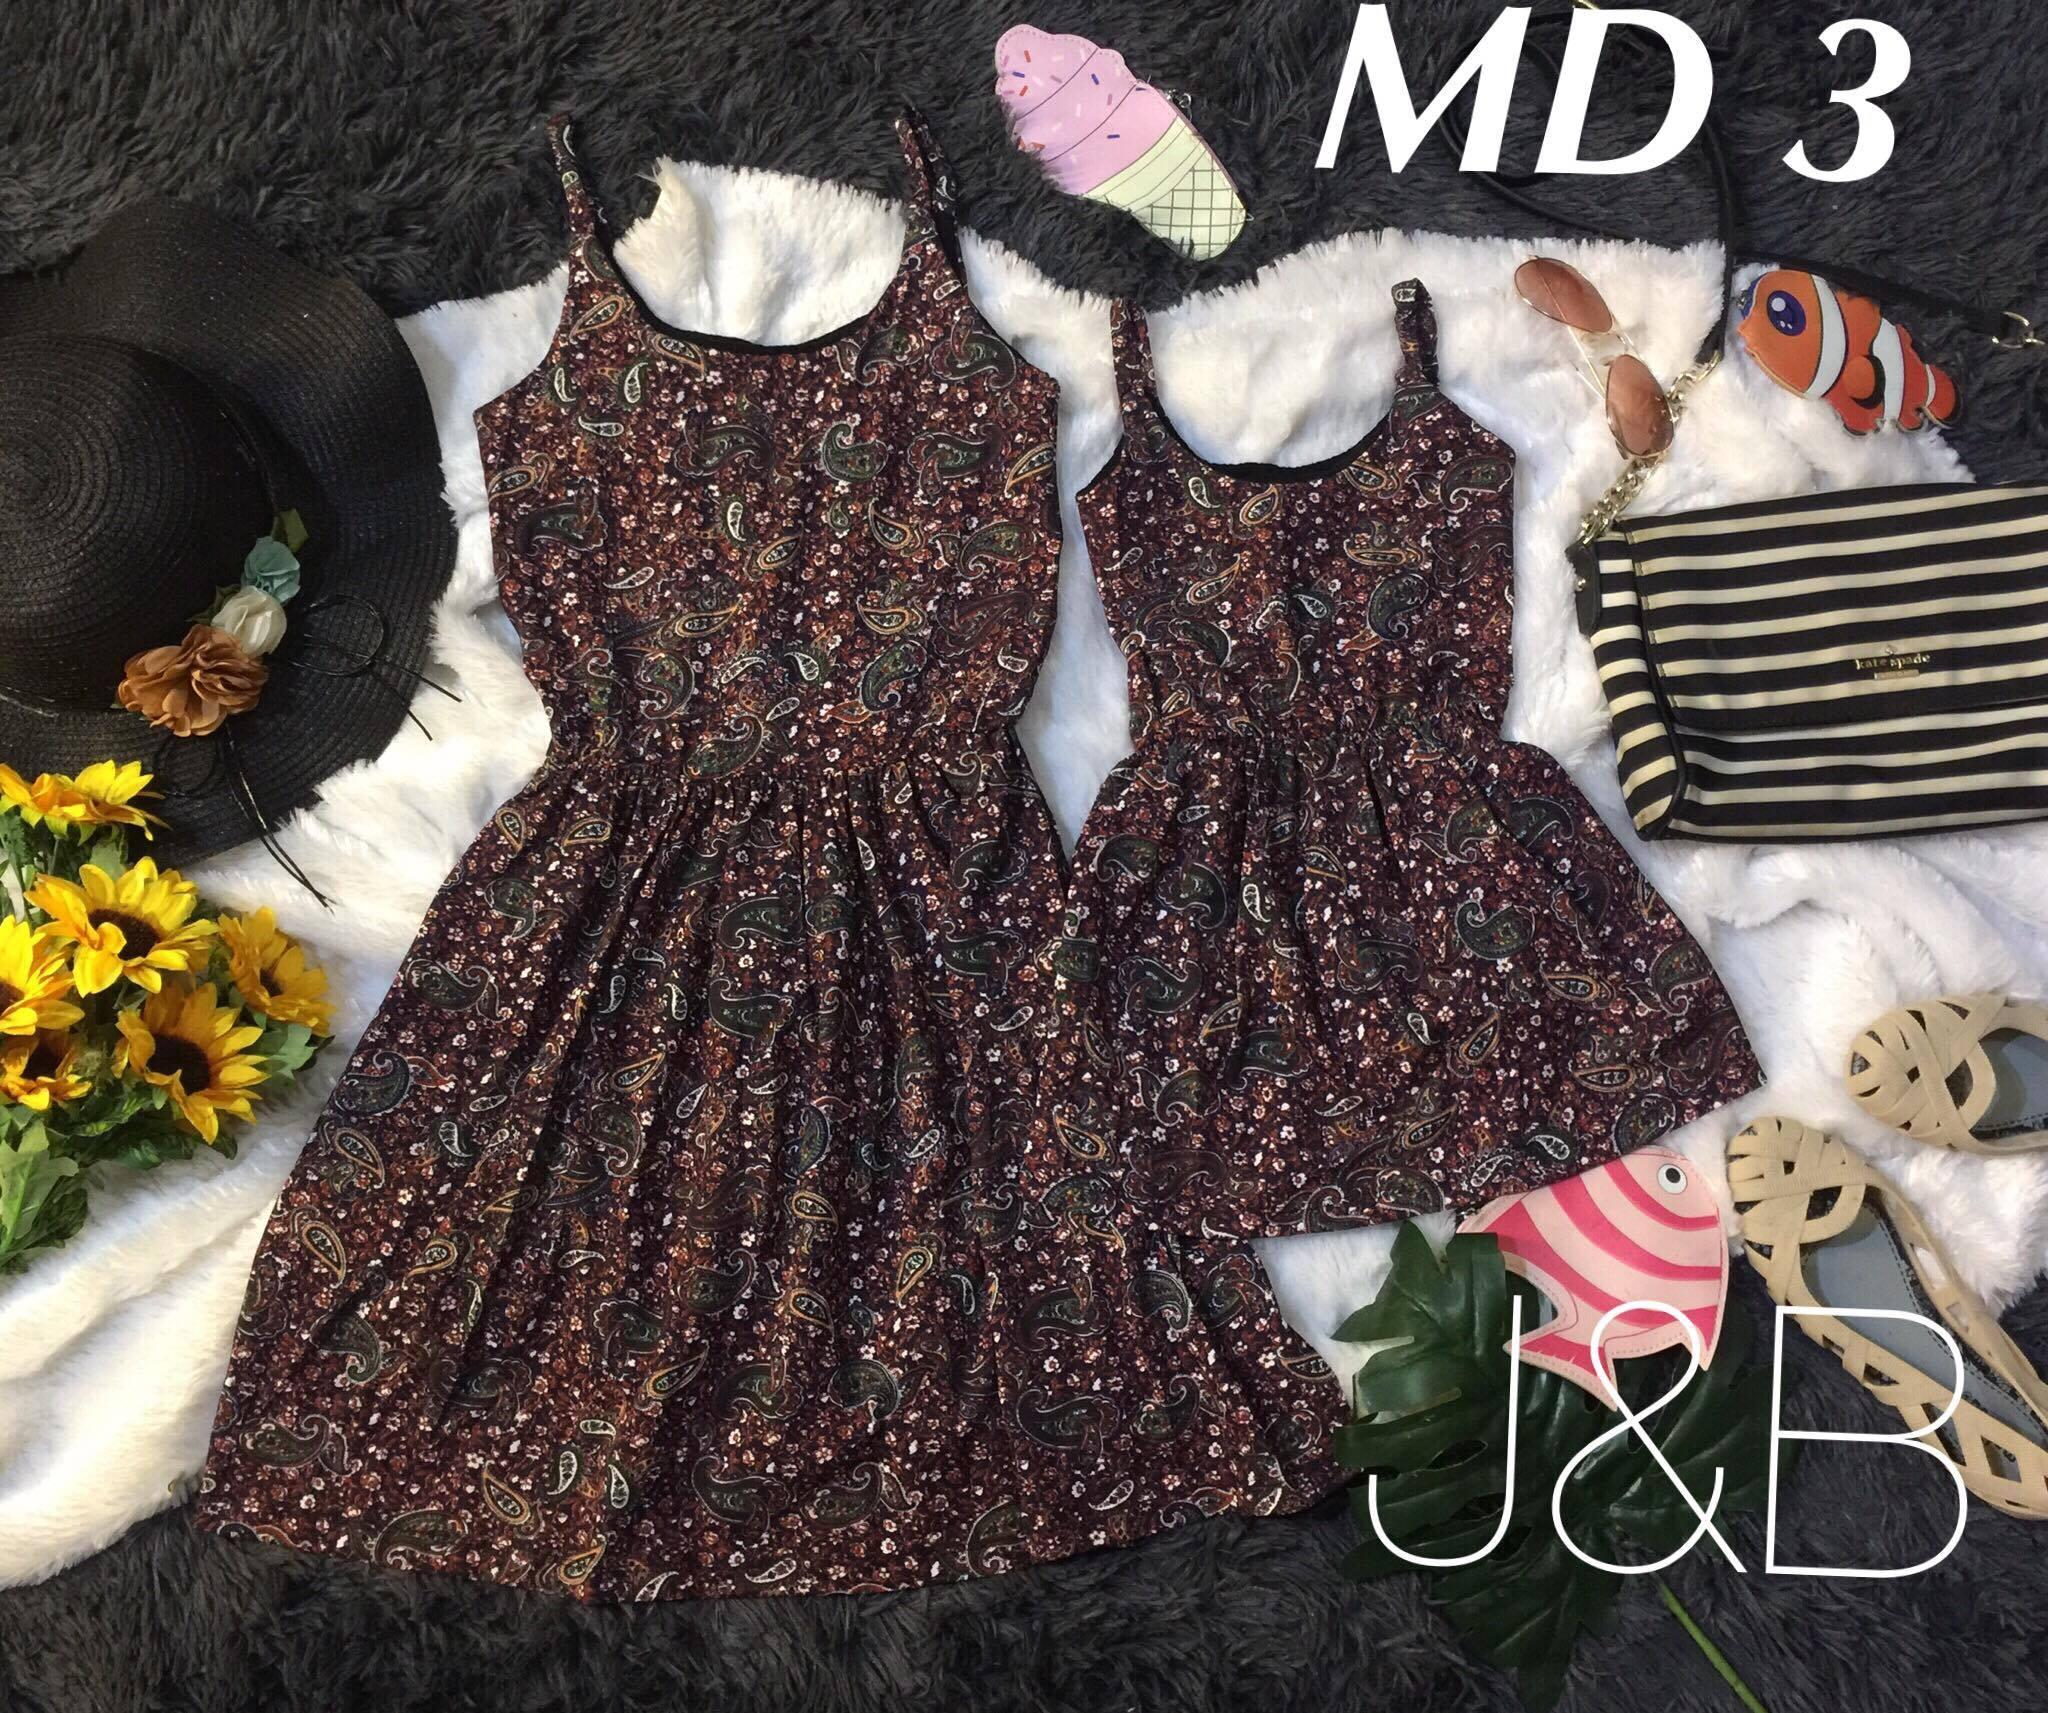 Baby Clothes for sale - Baby Clothing online brands dca14f6b2